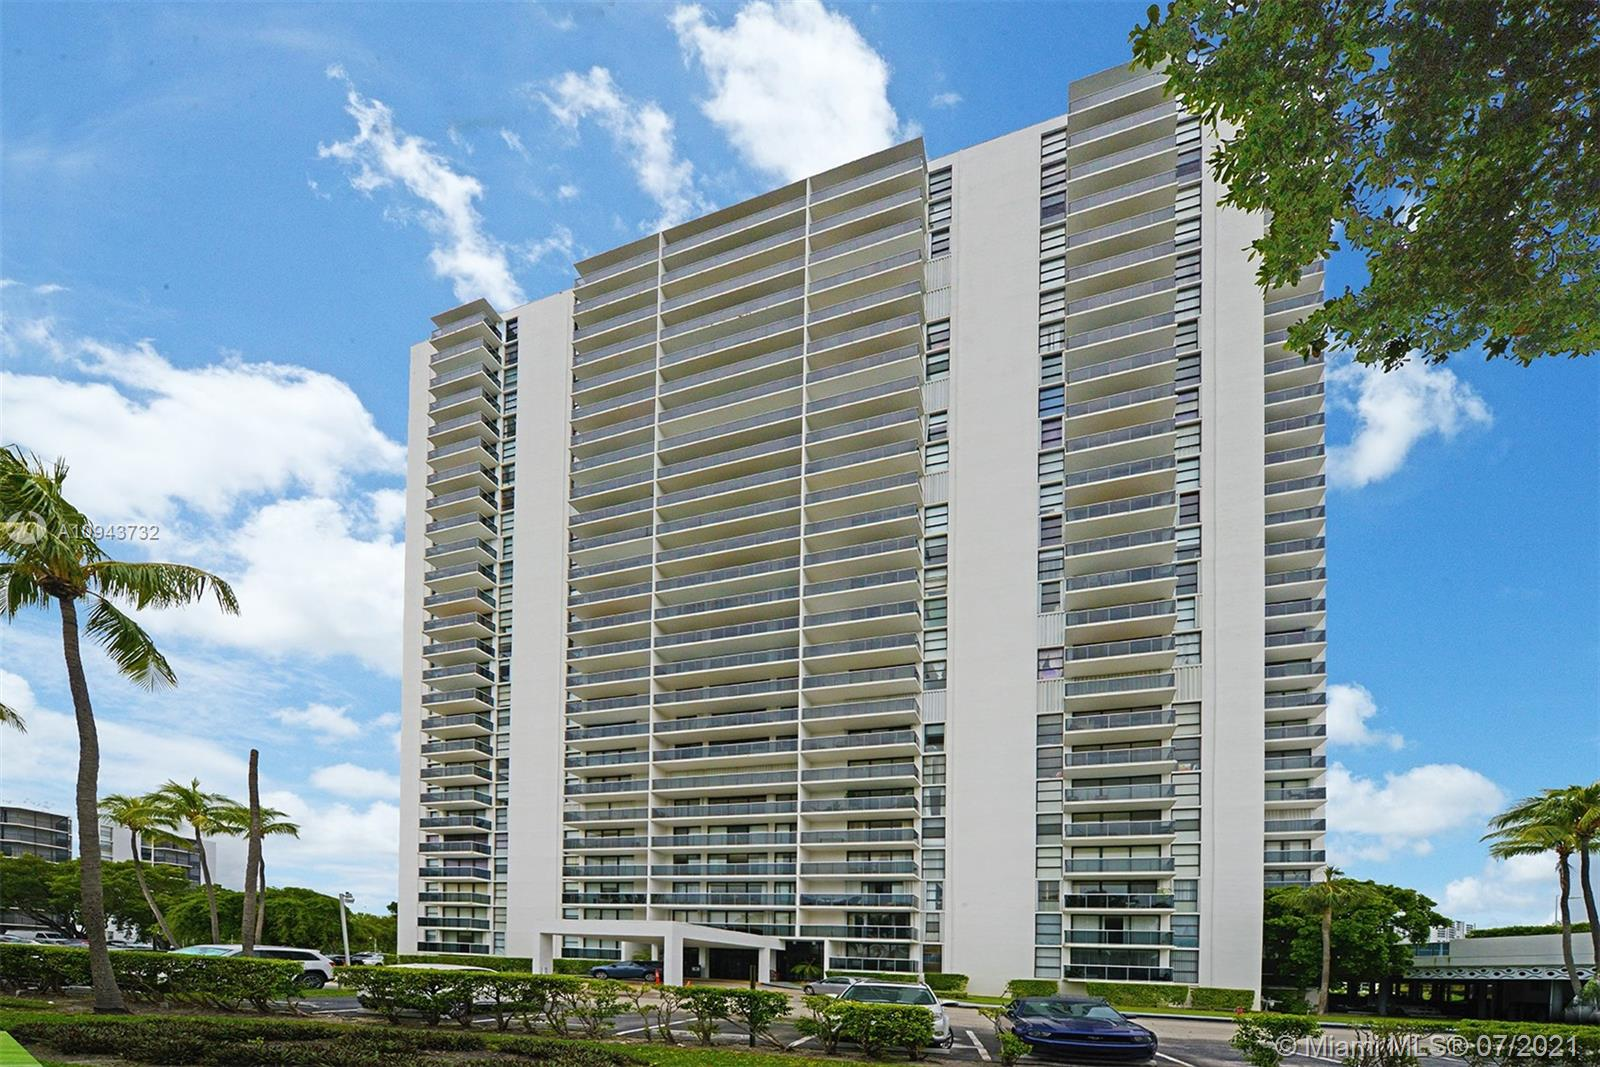 Eldorado Tower One #607 - 3625 N Country Club Dr #607, Aventura, FL 33180